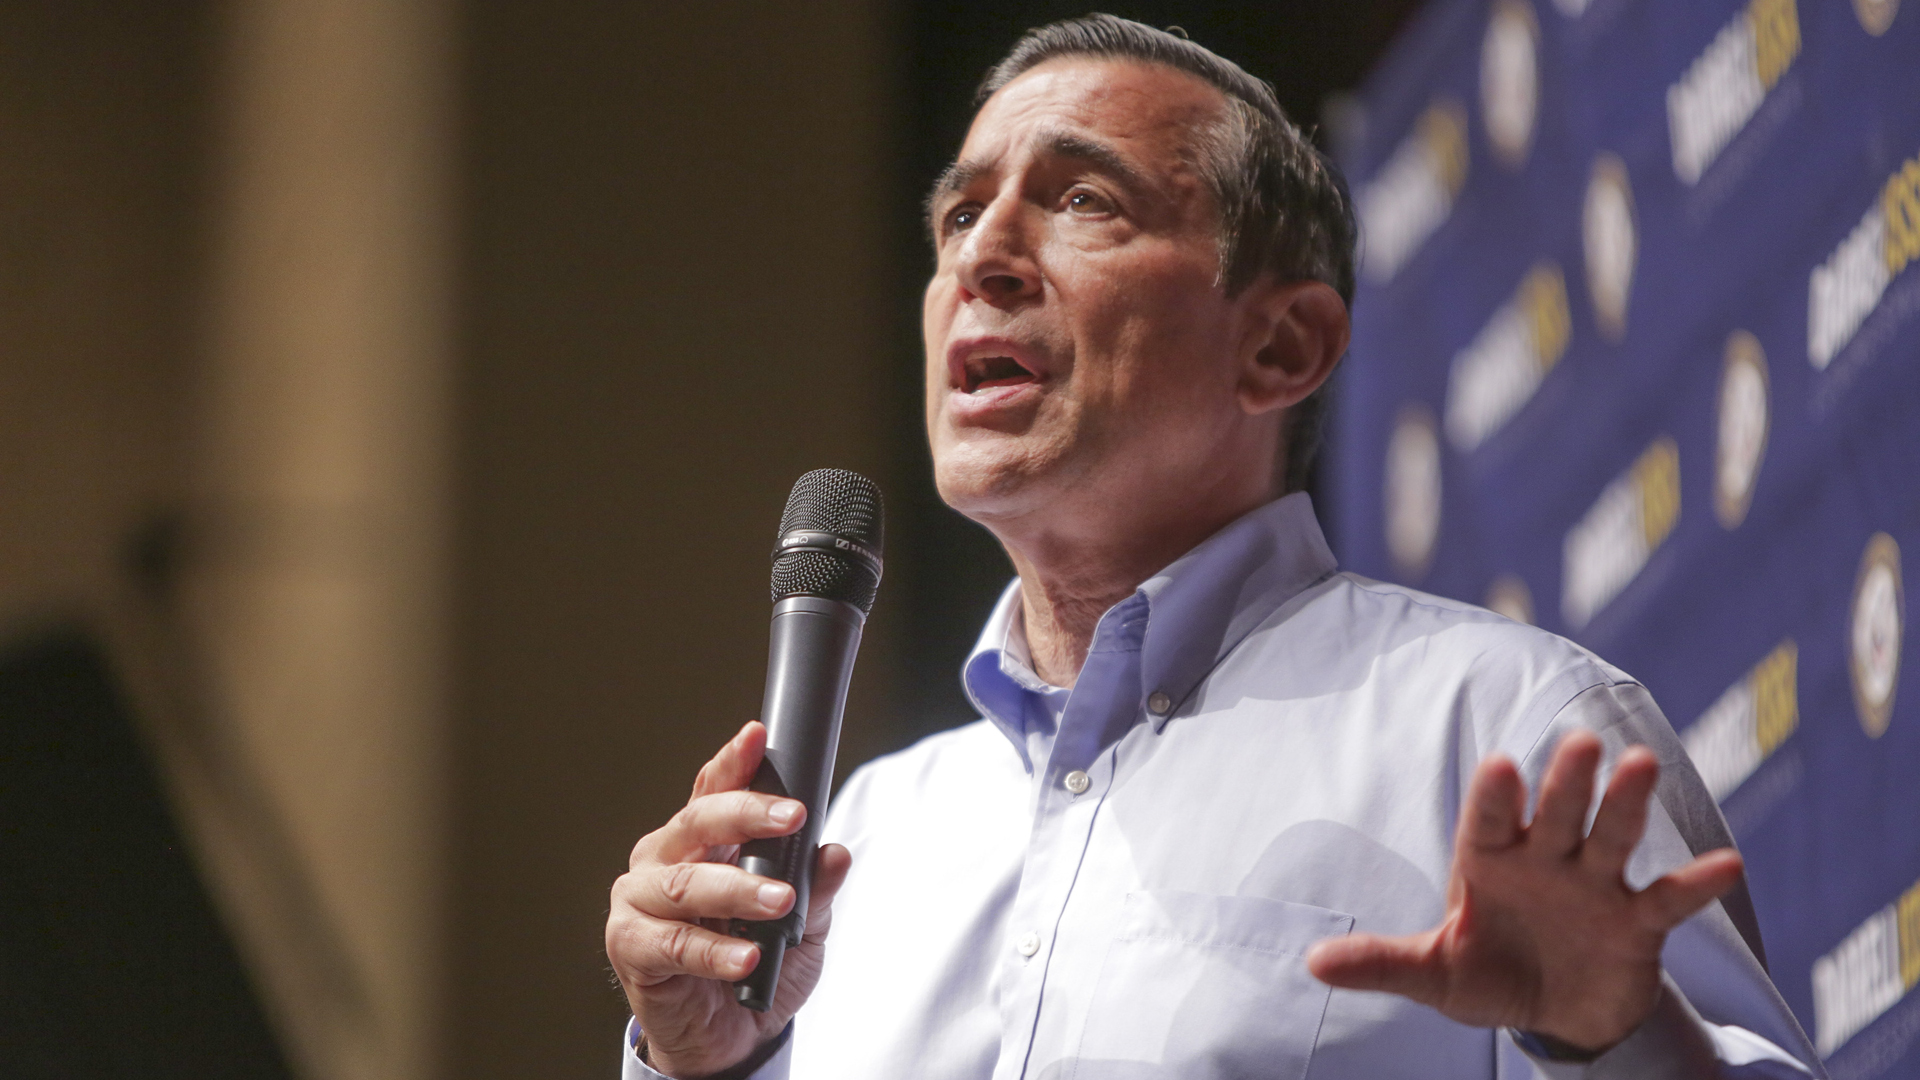 Darrell Issa speaks at a town hall meeting at a high school in San Juan Capistrano on June 3, 2017. (Credit: Bill Wechter / AFP / Getty Images)